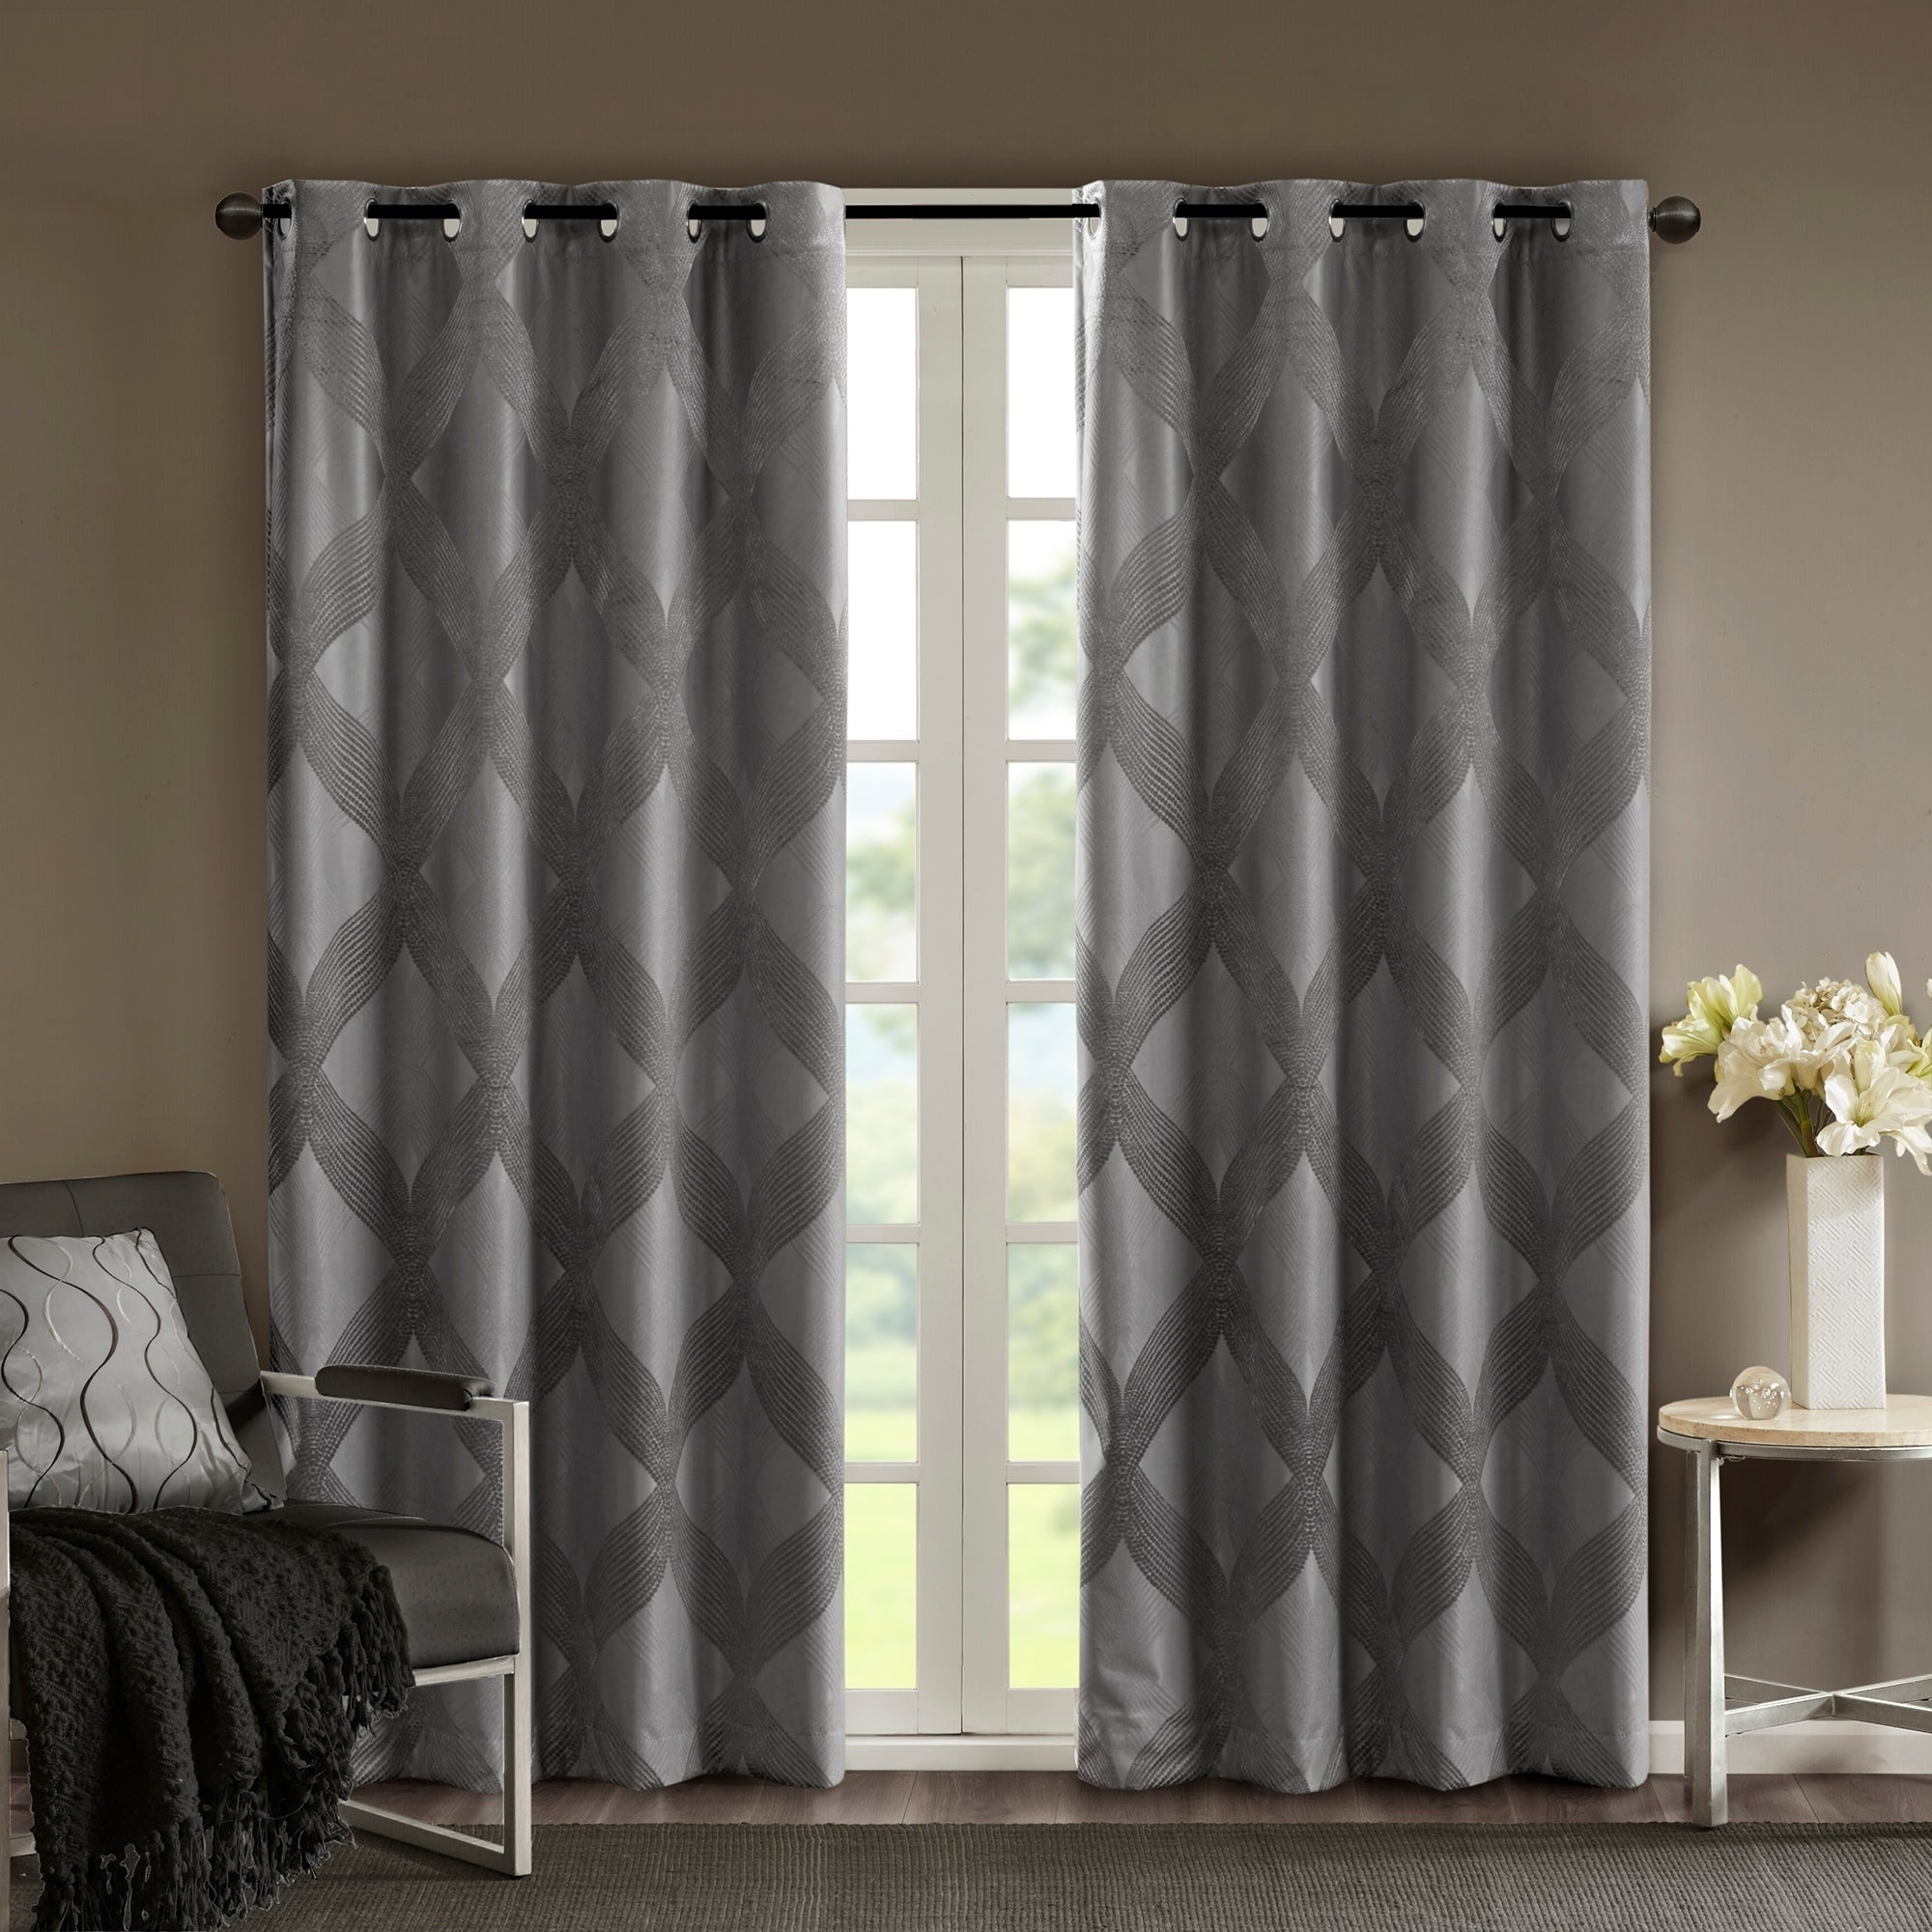 Gracewood Hollow Tucakovic Energy Efficient Fabric Blackout Curtains Regarding Fashionable Sunsmart Abel Ogee Knitted Jacquard Total Blackout Curtain Panel (View 16 of 20)